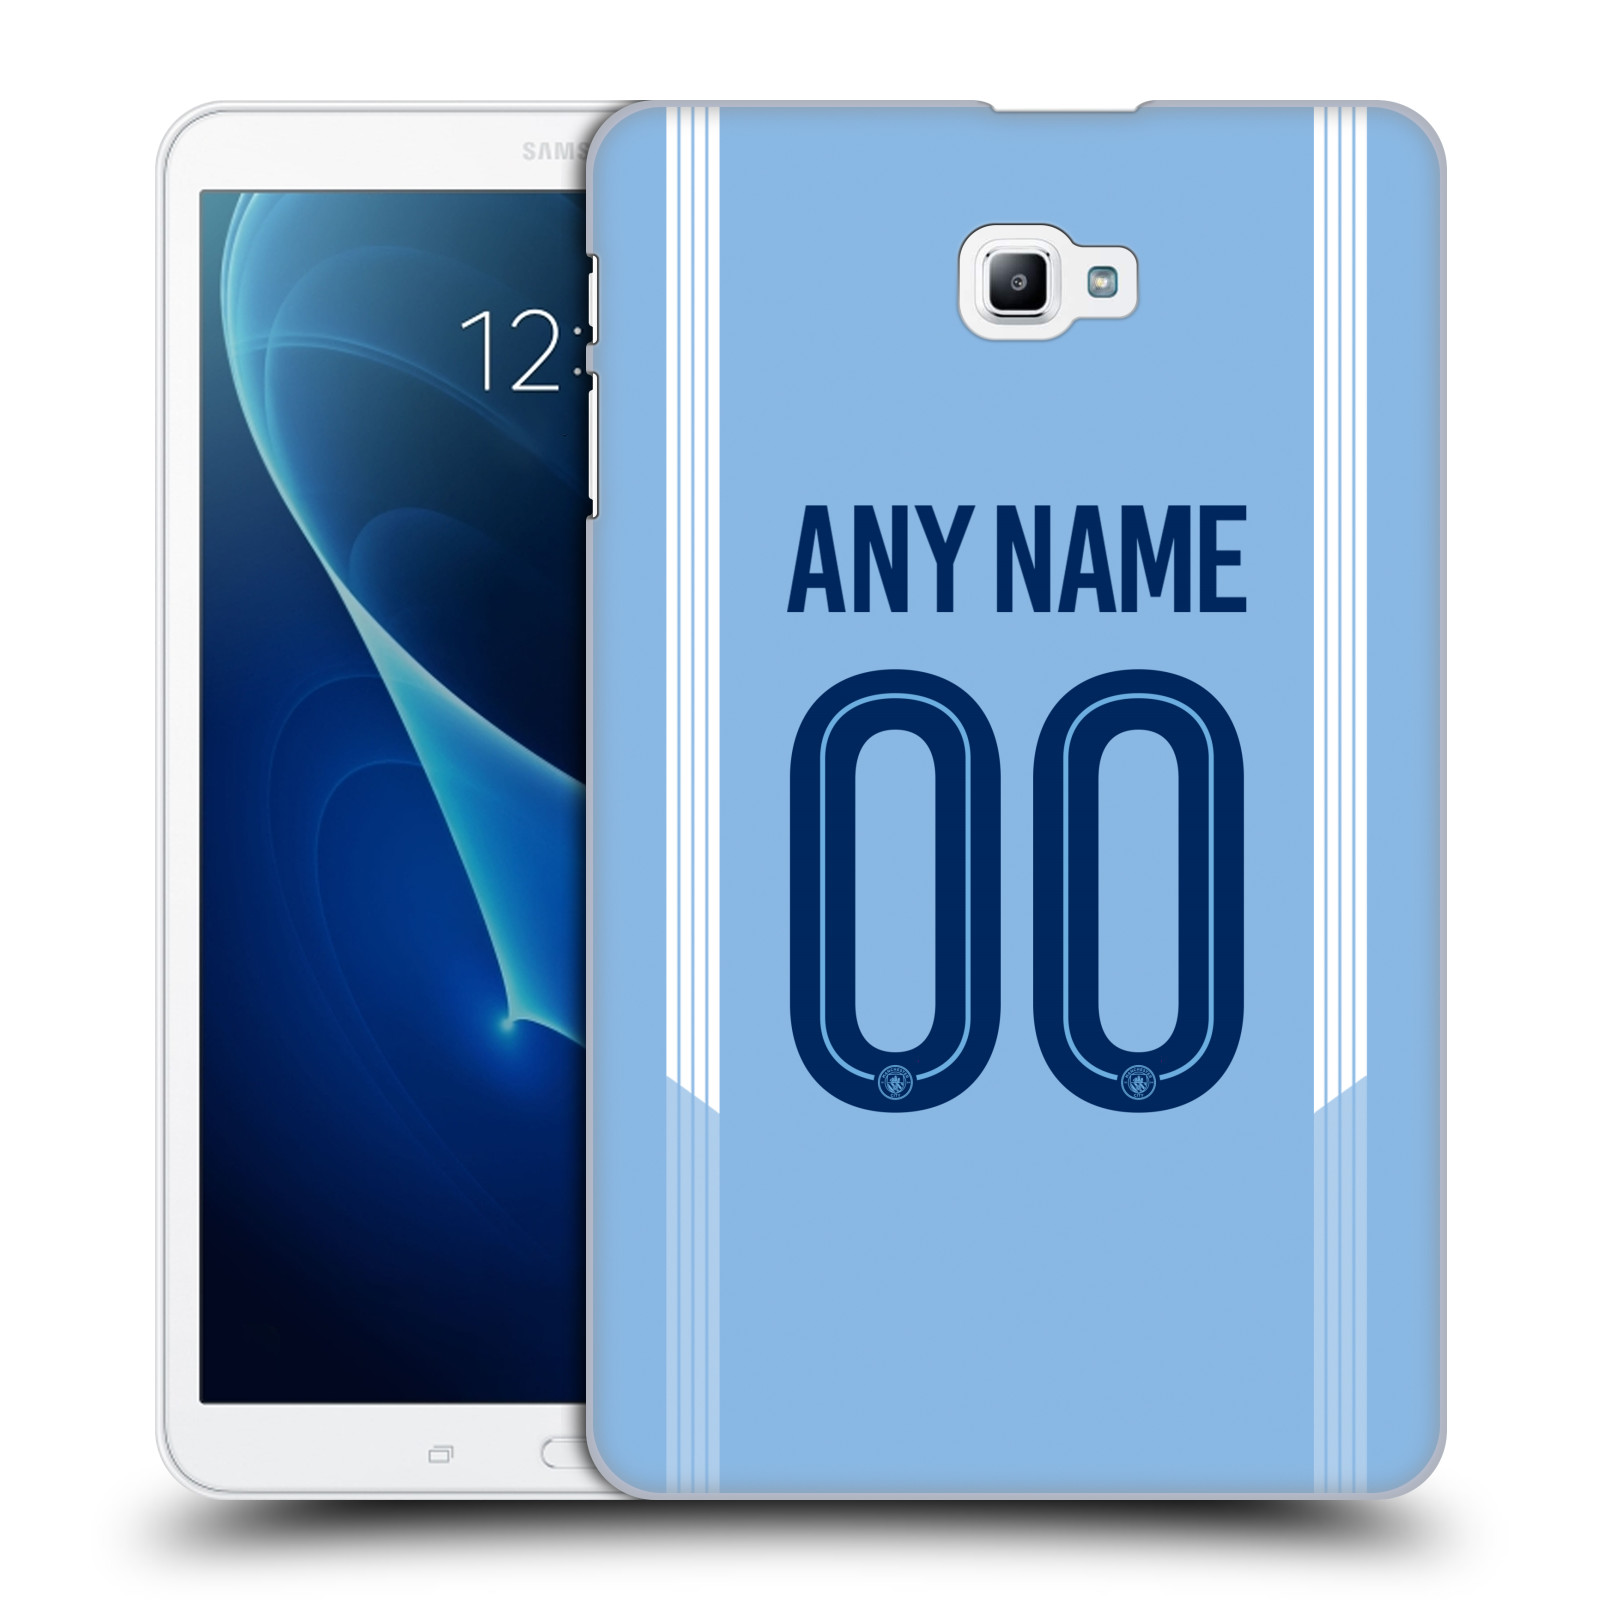 CUSTOM-MANCHESTER-CITY-MAN-CITY-FC-2017-18-LOGO-amp-KIT-CASE-FOR-SAMSUNG-TABLETS-1